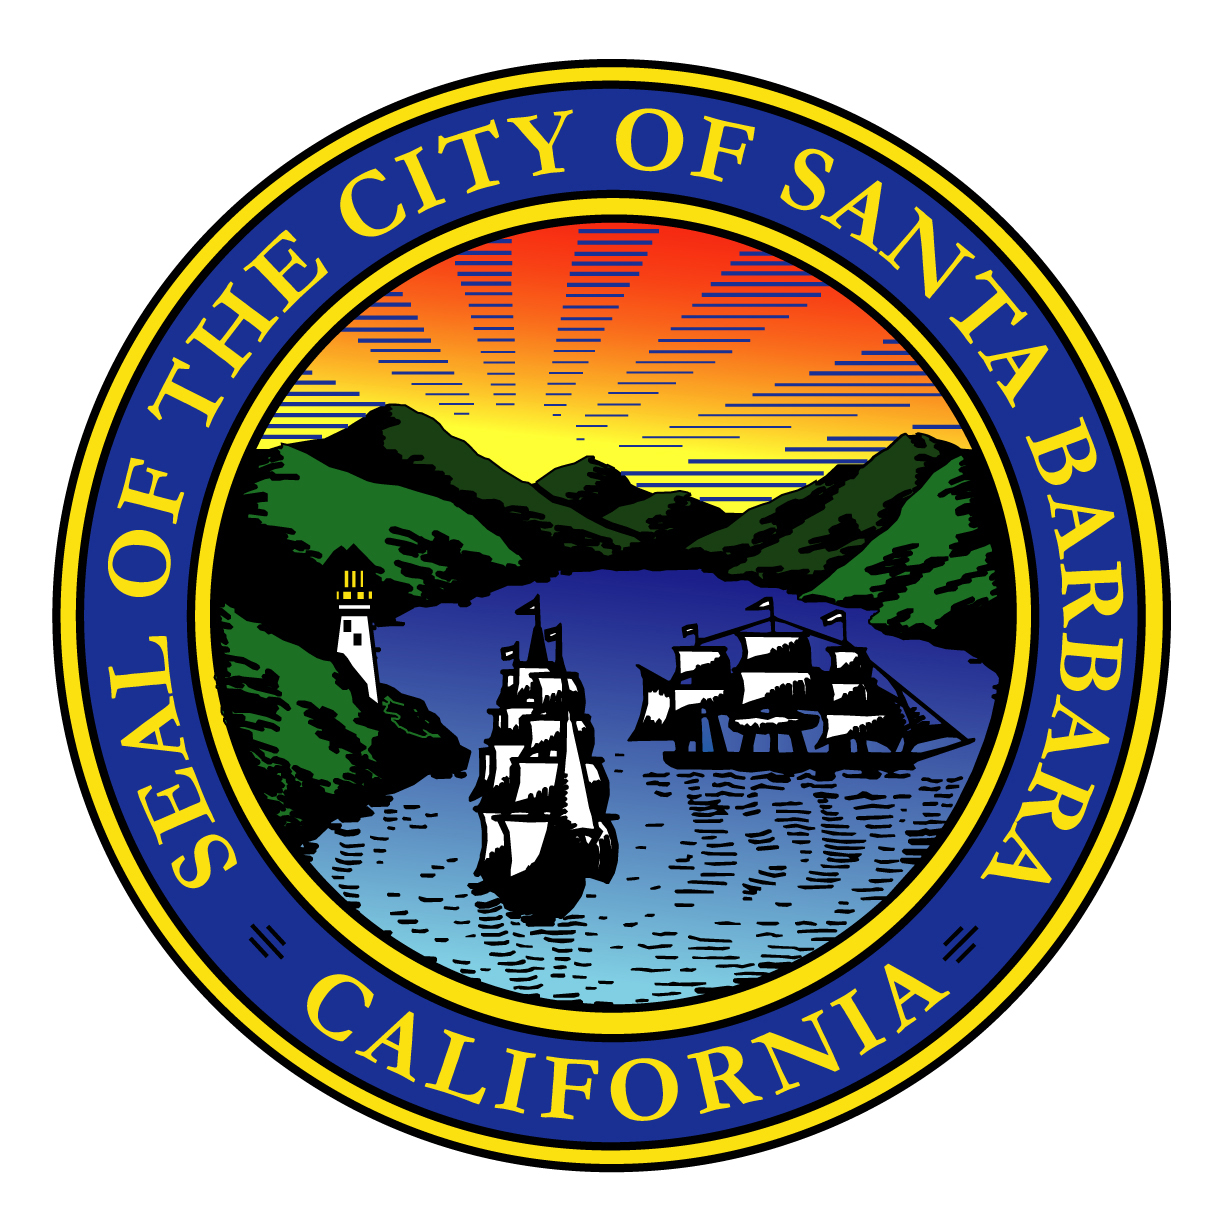 CITY OF SANTA BARBARA ARTS GRANT PROGRAMS:   COMMUNITY ARTS ORGANIZATIONAL DEVELOPMENT COMMUNITY EVENTS AND FESTIVALS  If you need assistance please contact the Santa Barbara County Office of Arts and Culture.   Staff Contact:   Hannah Rubalcava Grants and Contracts Manager  hannah@sbac.ca.gov 805.568.3990